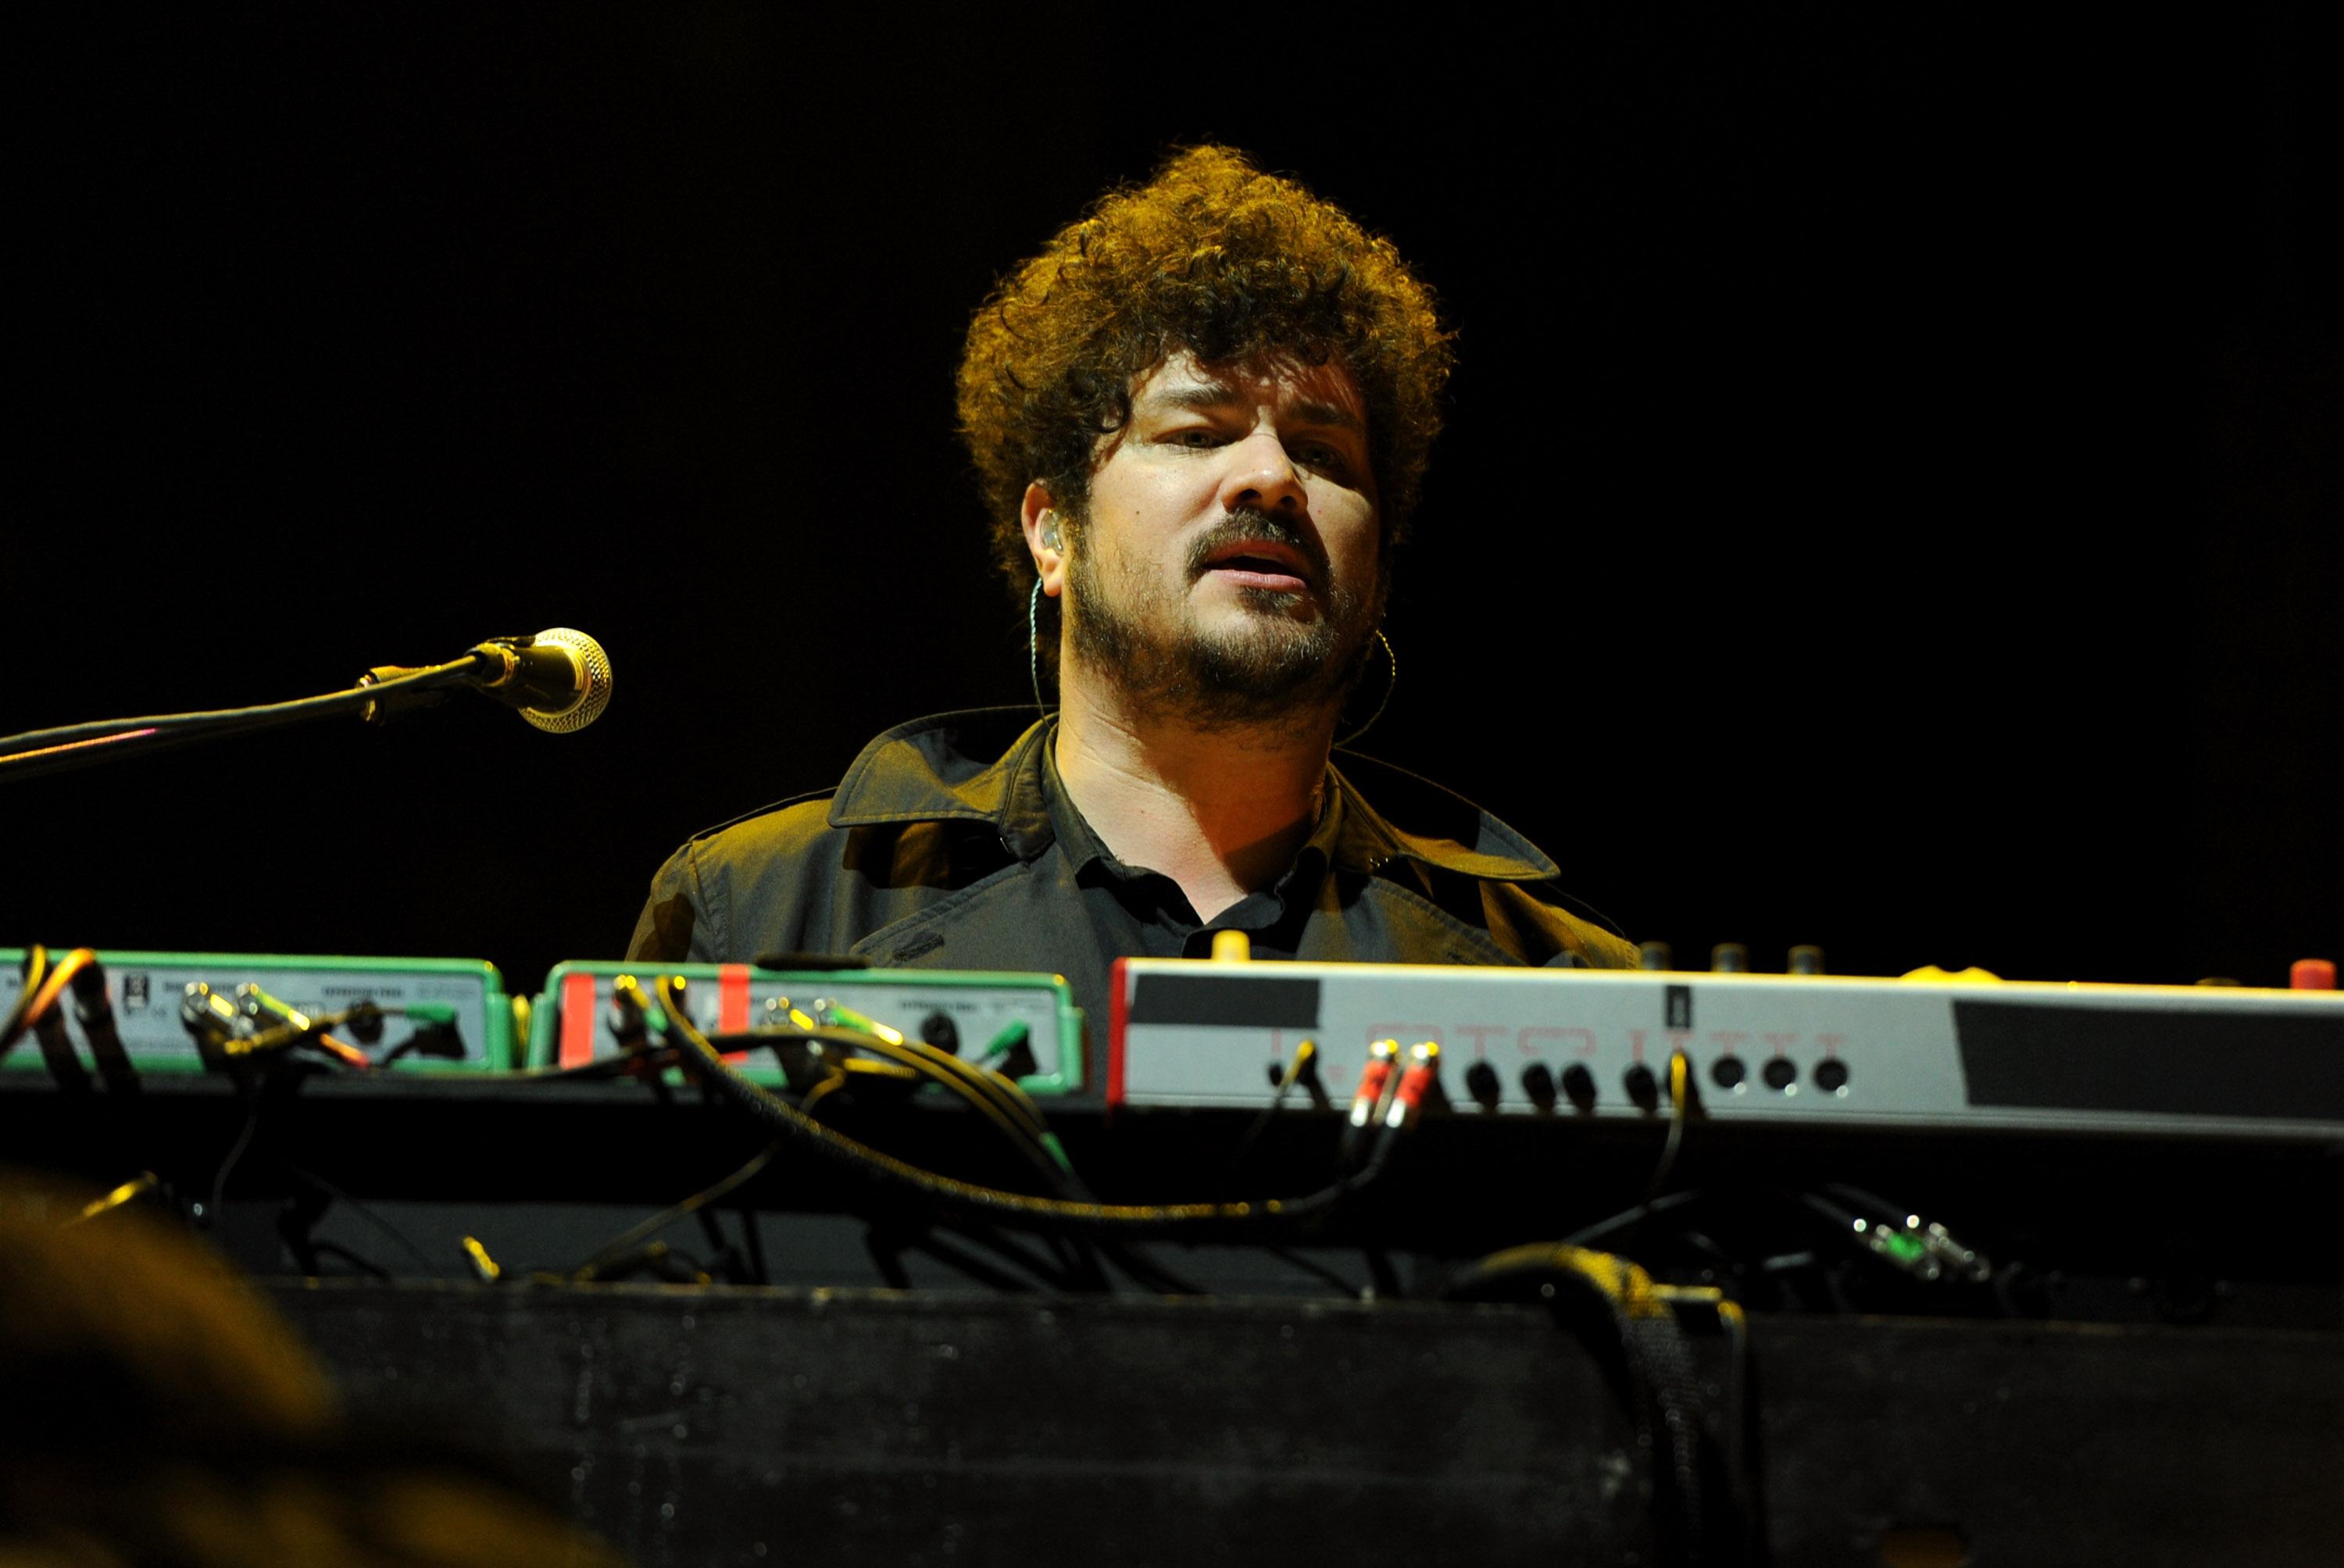 Musician Richard Swift of The Shins performs onstage during day 2 of the 2012 Coachella Valley Music & Arts Festival at the Empire Polo Field on April 14, 2012 in Indio, California.